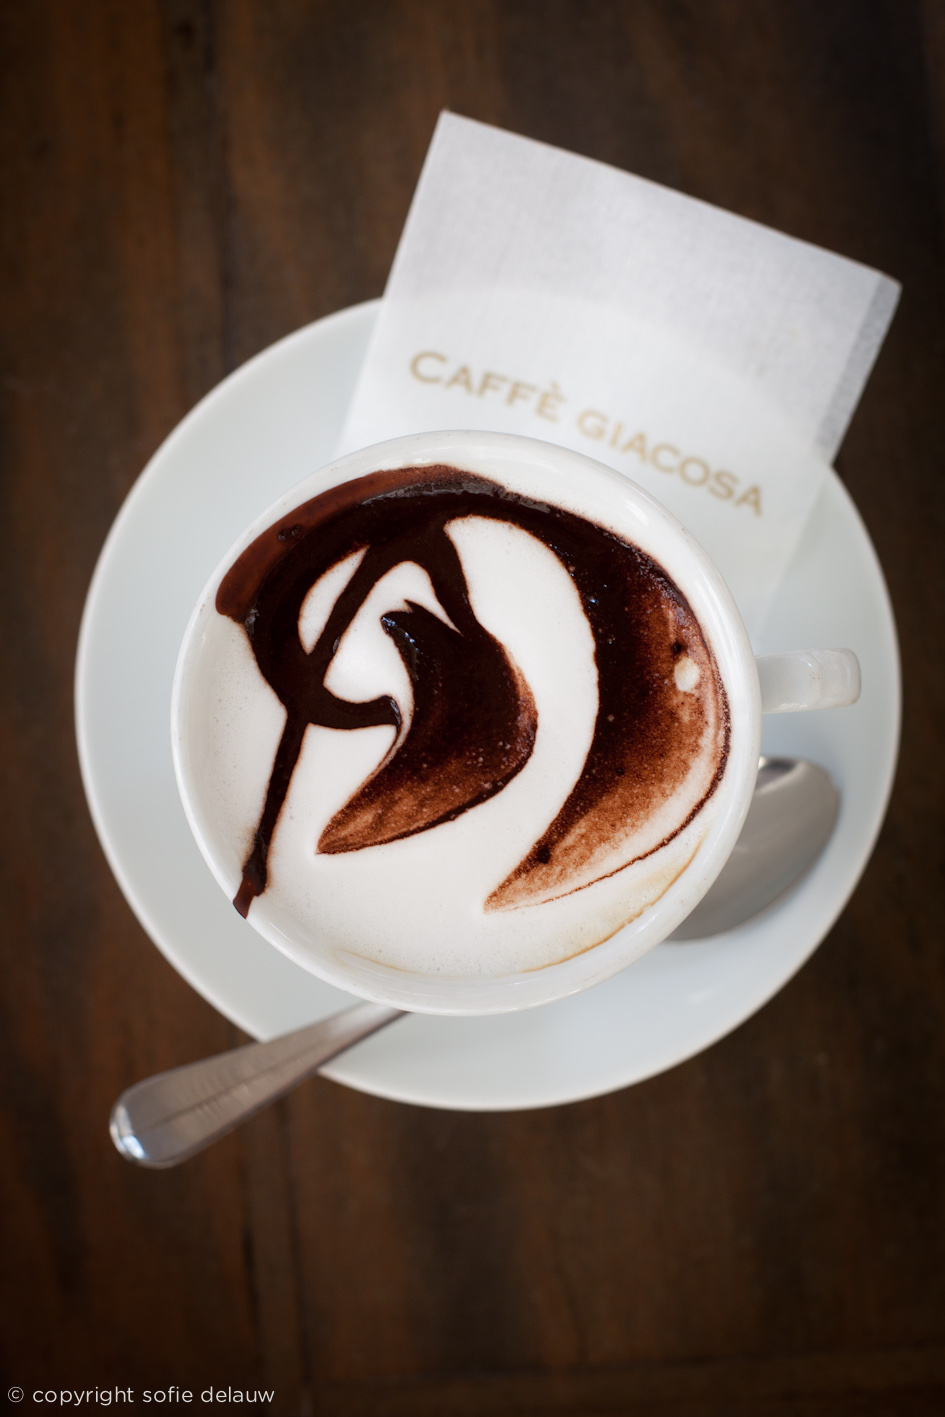 coffee bar image editorial food photography Firenze Florence Italy